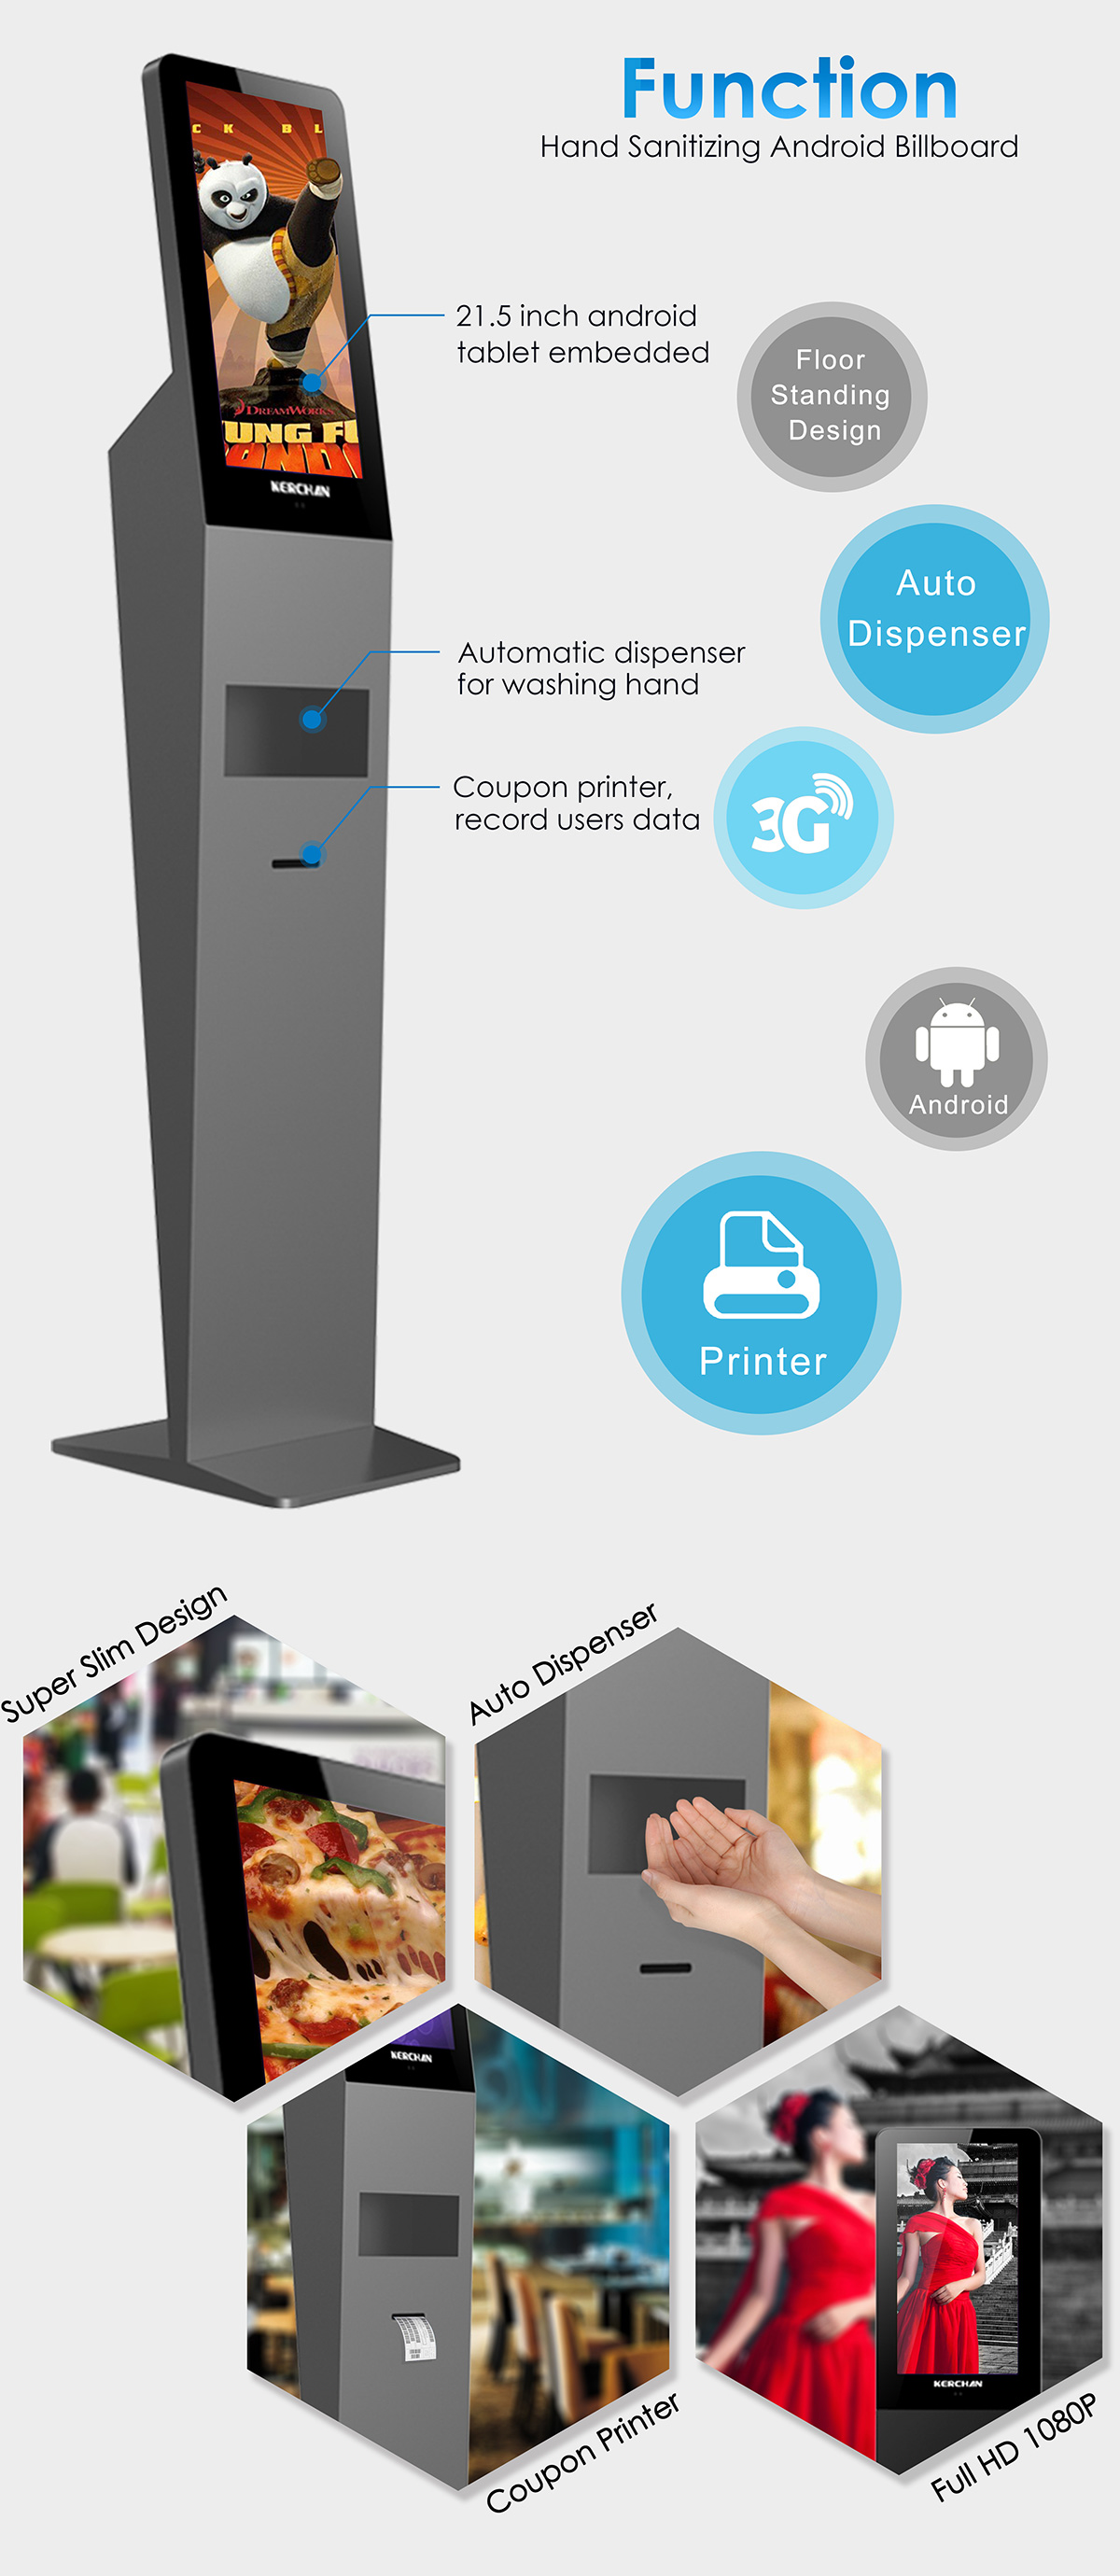 Coupon Printer 21 5inch Advertising Kiosk It S A Kind Of Samll Size Digital Signage It Could Use For Retail Digital Signage Or Wifi Digital Signage Auto Hand Dispenser And Coupon Printer Lcd Advertising